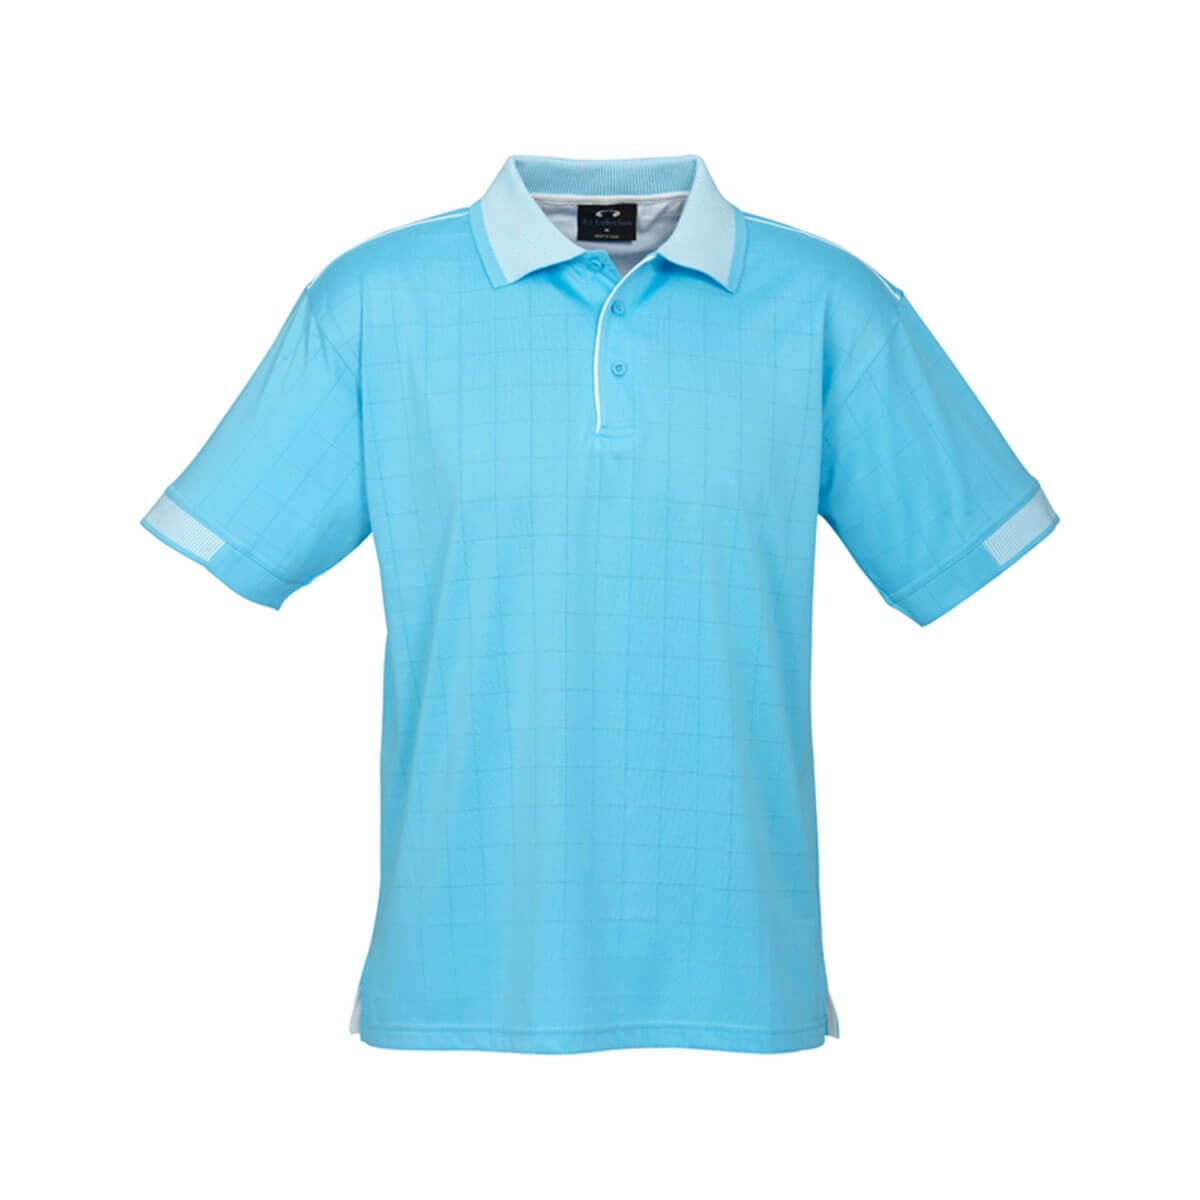 Mens Noosa Self Check Polo-Aqua Blue / White